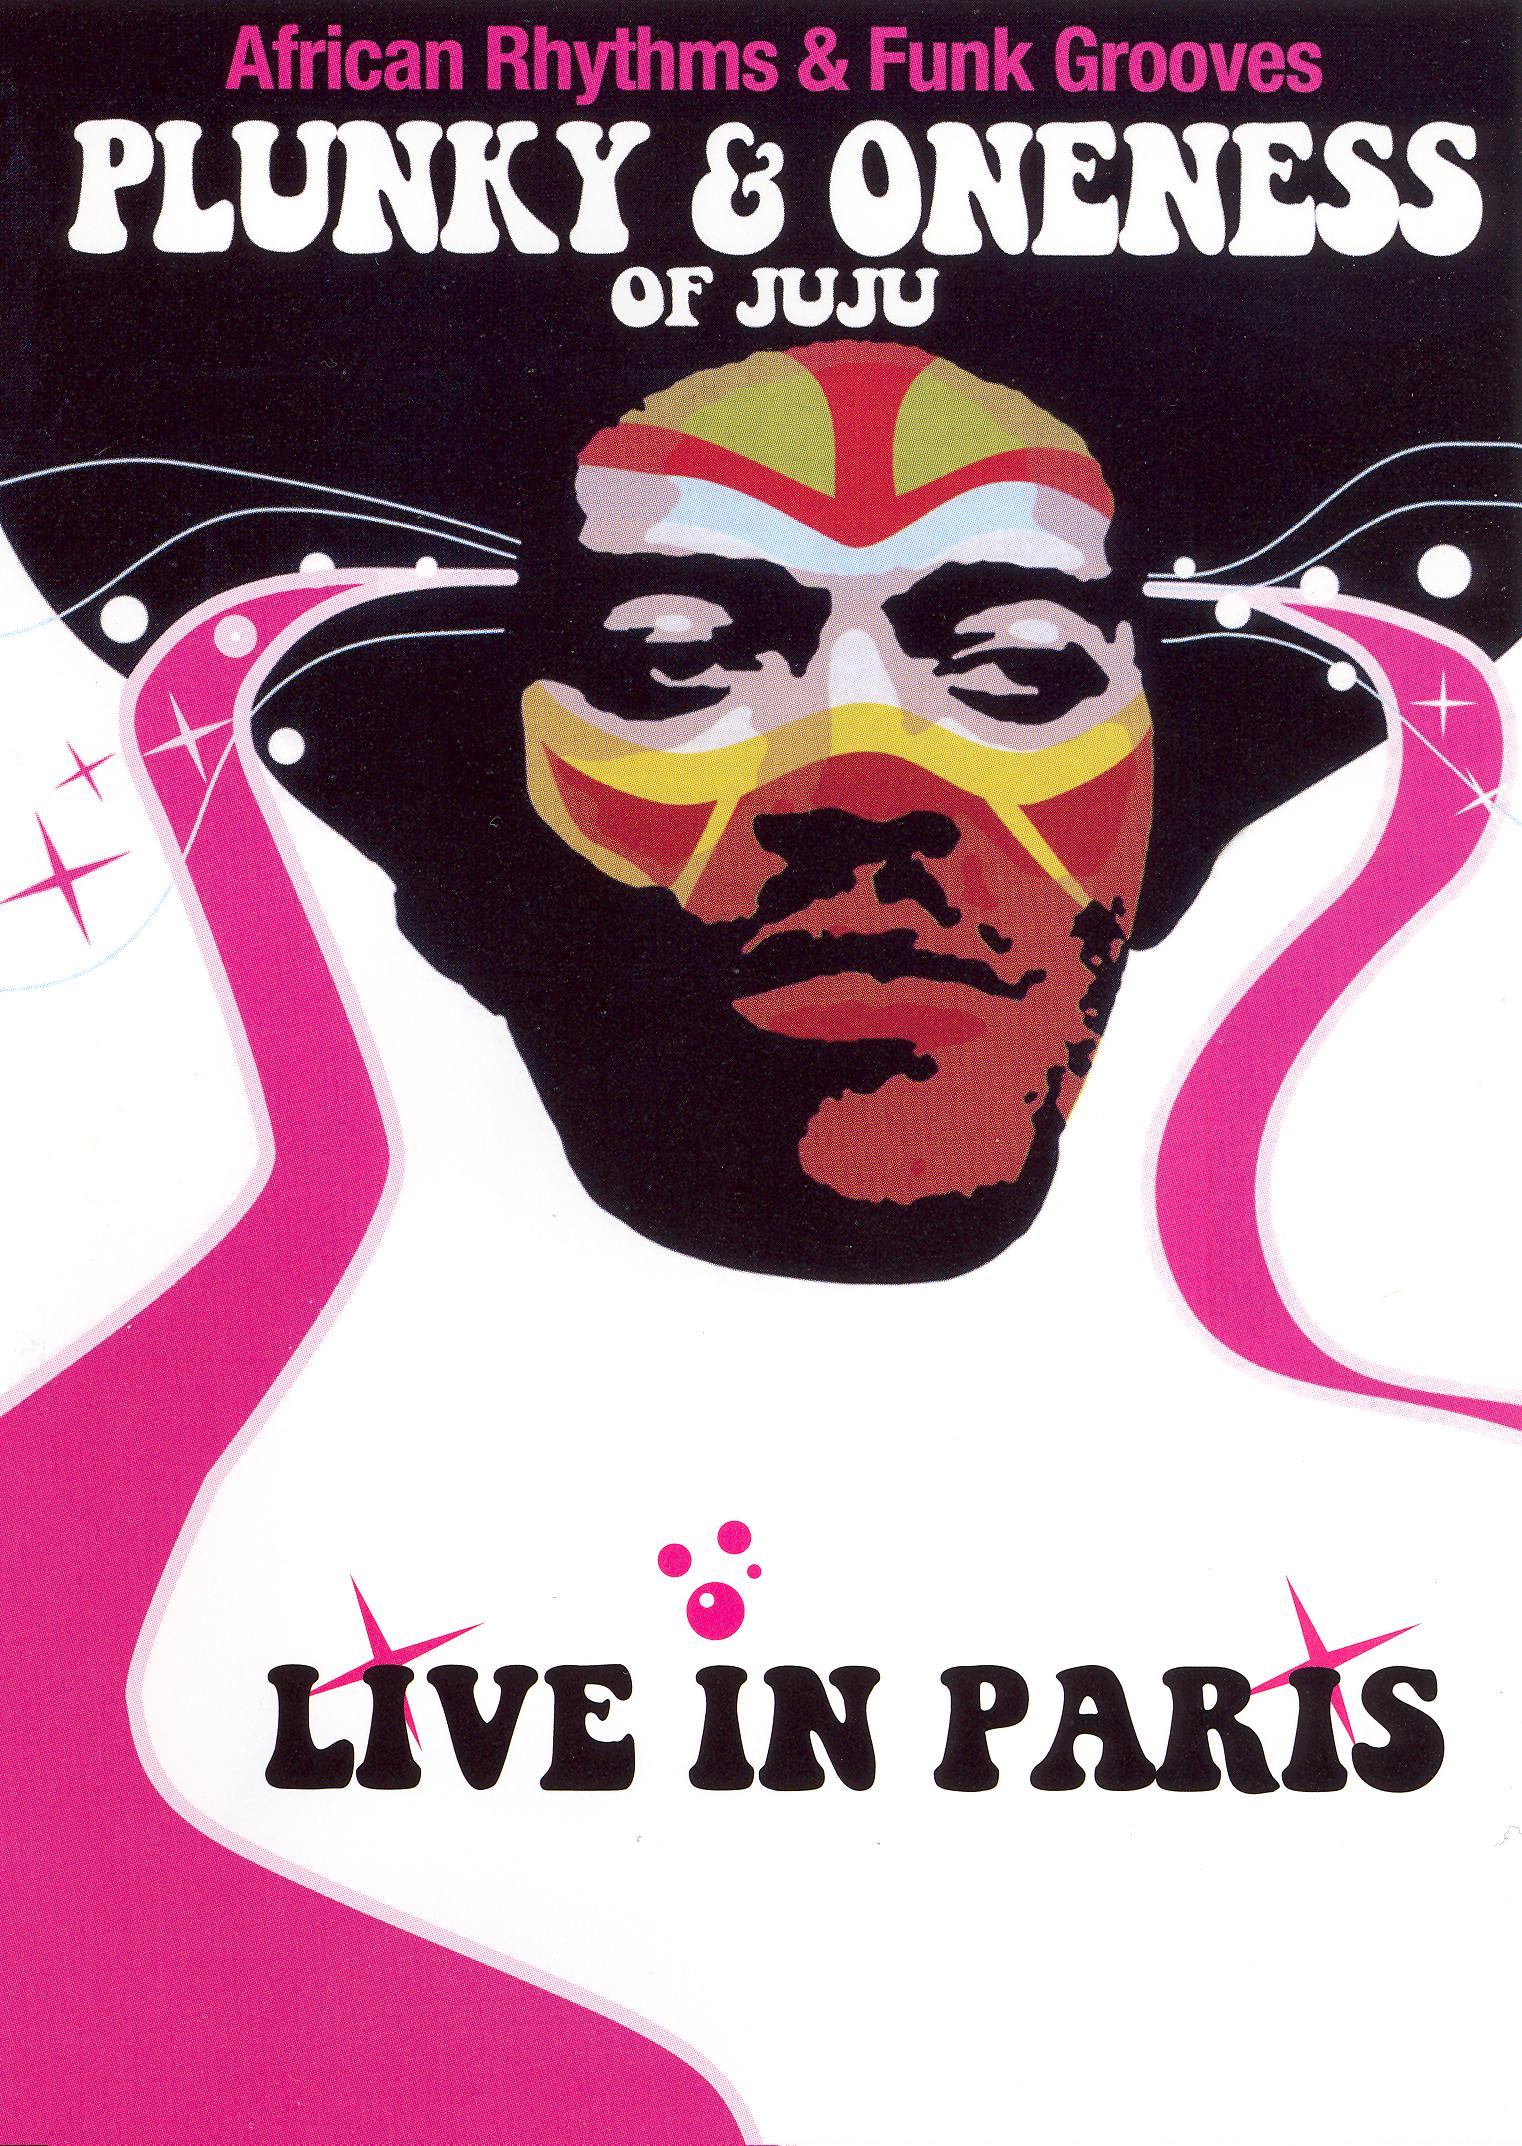 Plunky and Oneness of Juju: Live in Paris